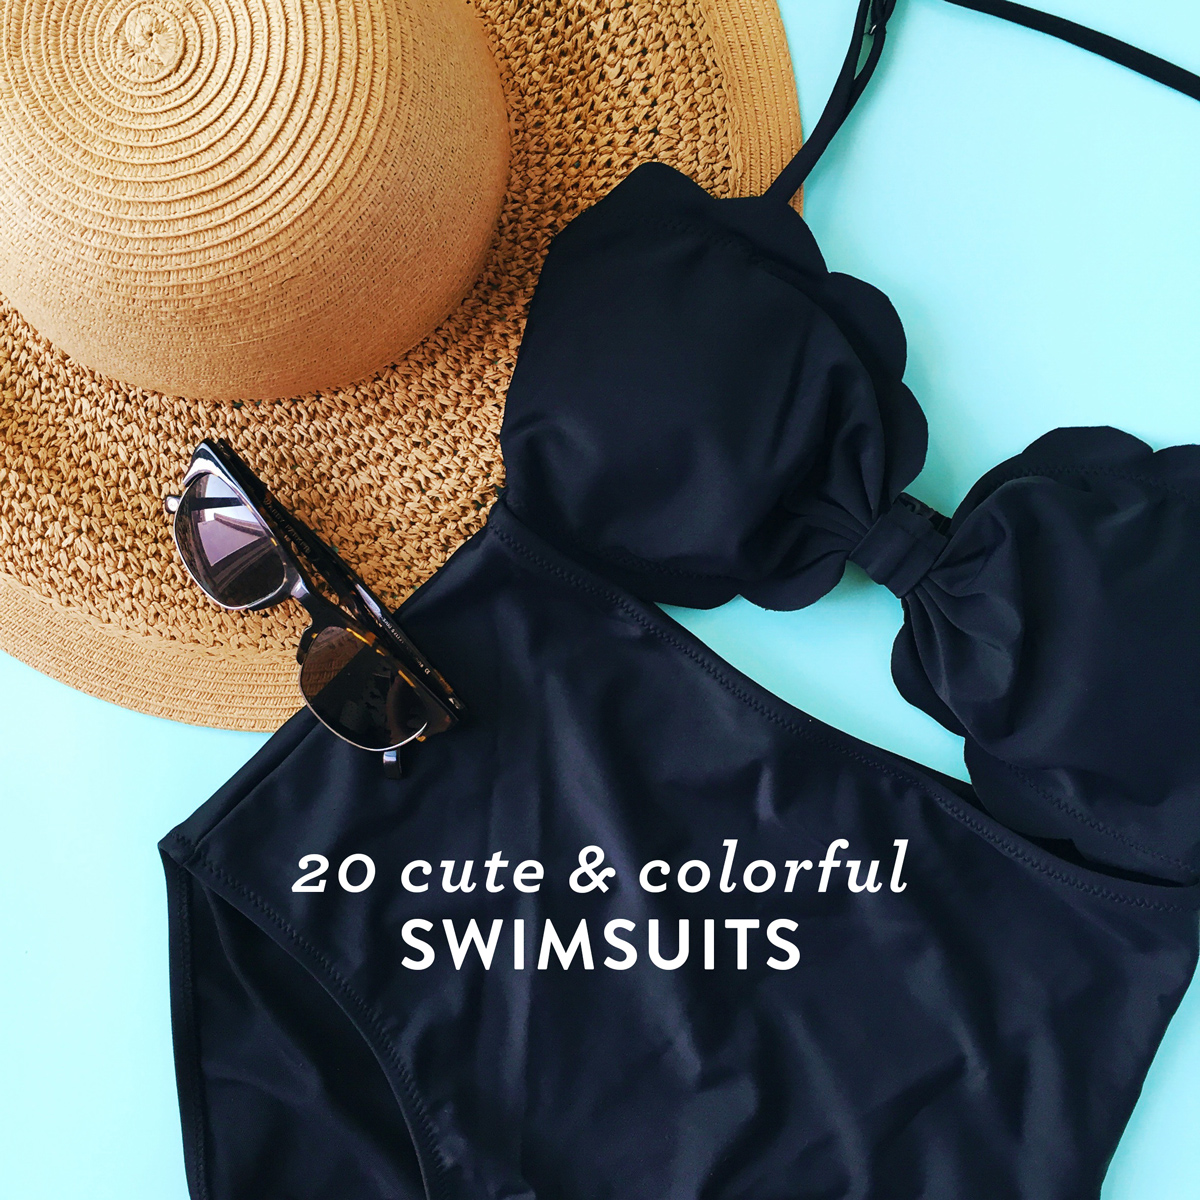 20 great swimsuits for all body types and budgets. Includes picks for colorful bikinis and flattering one-pieces.